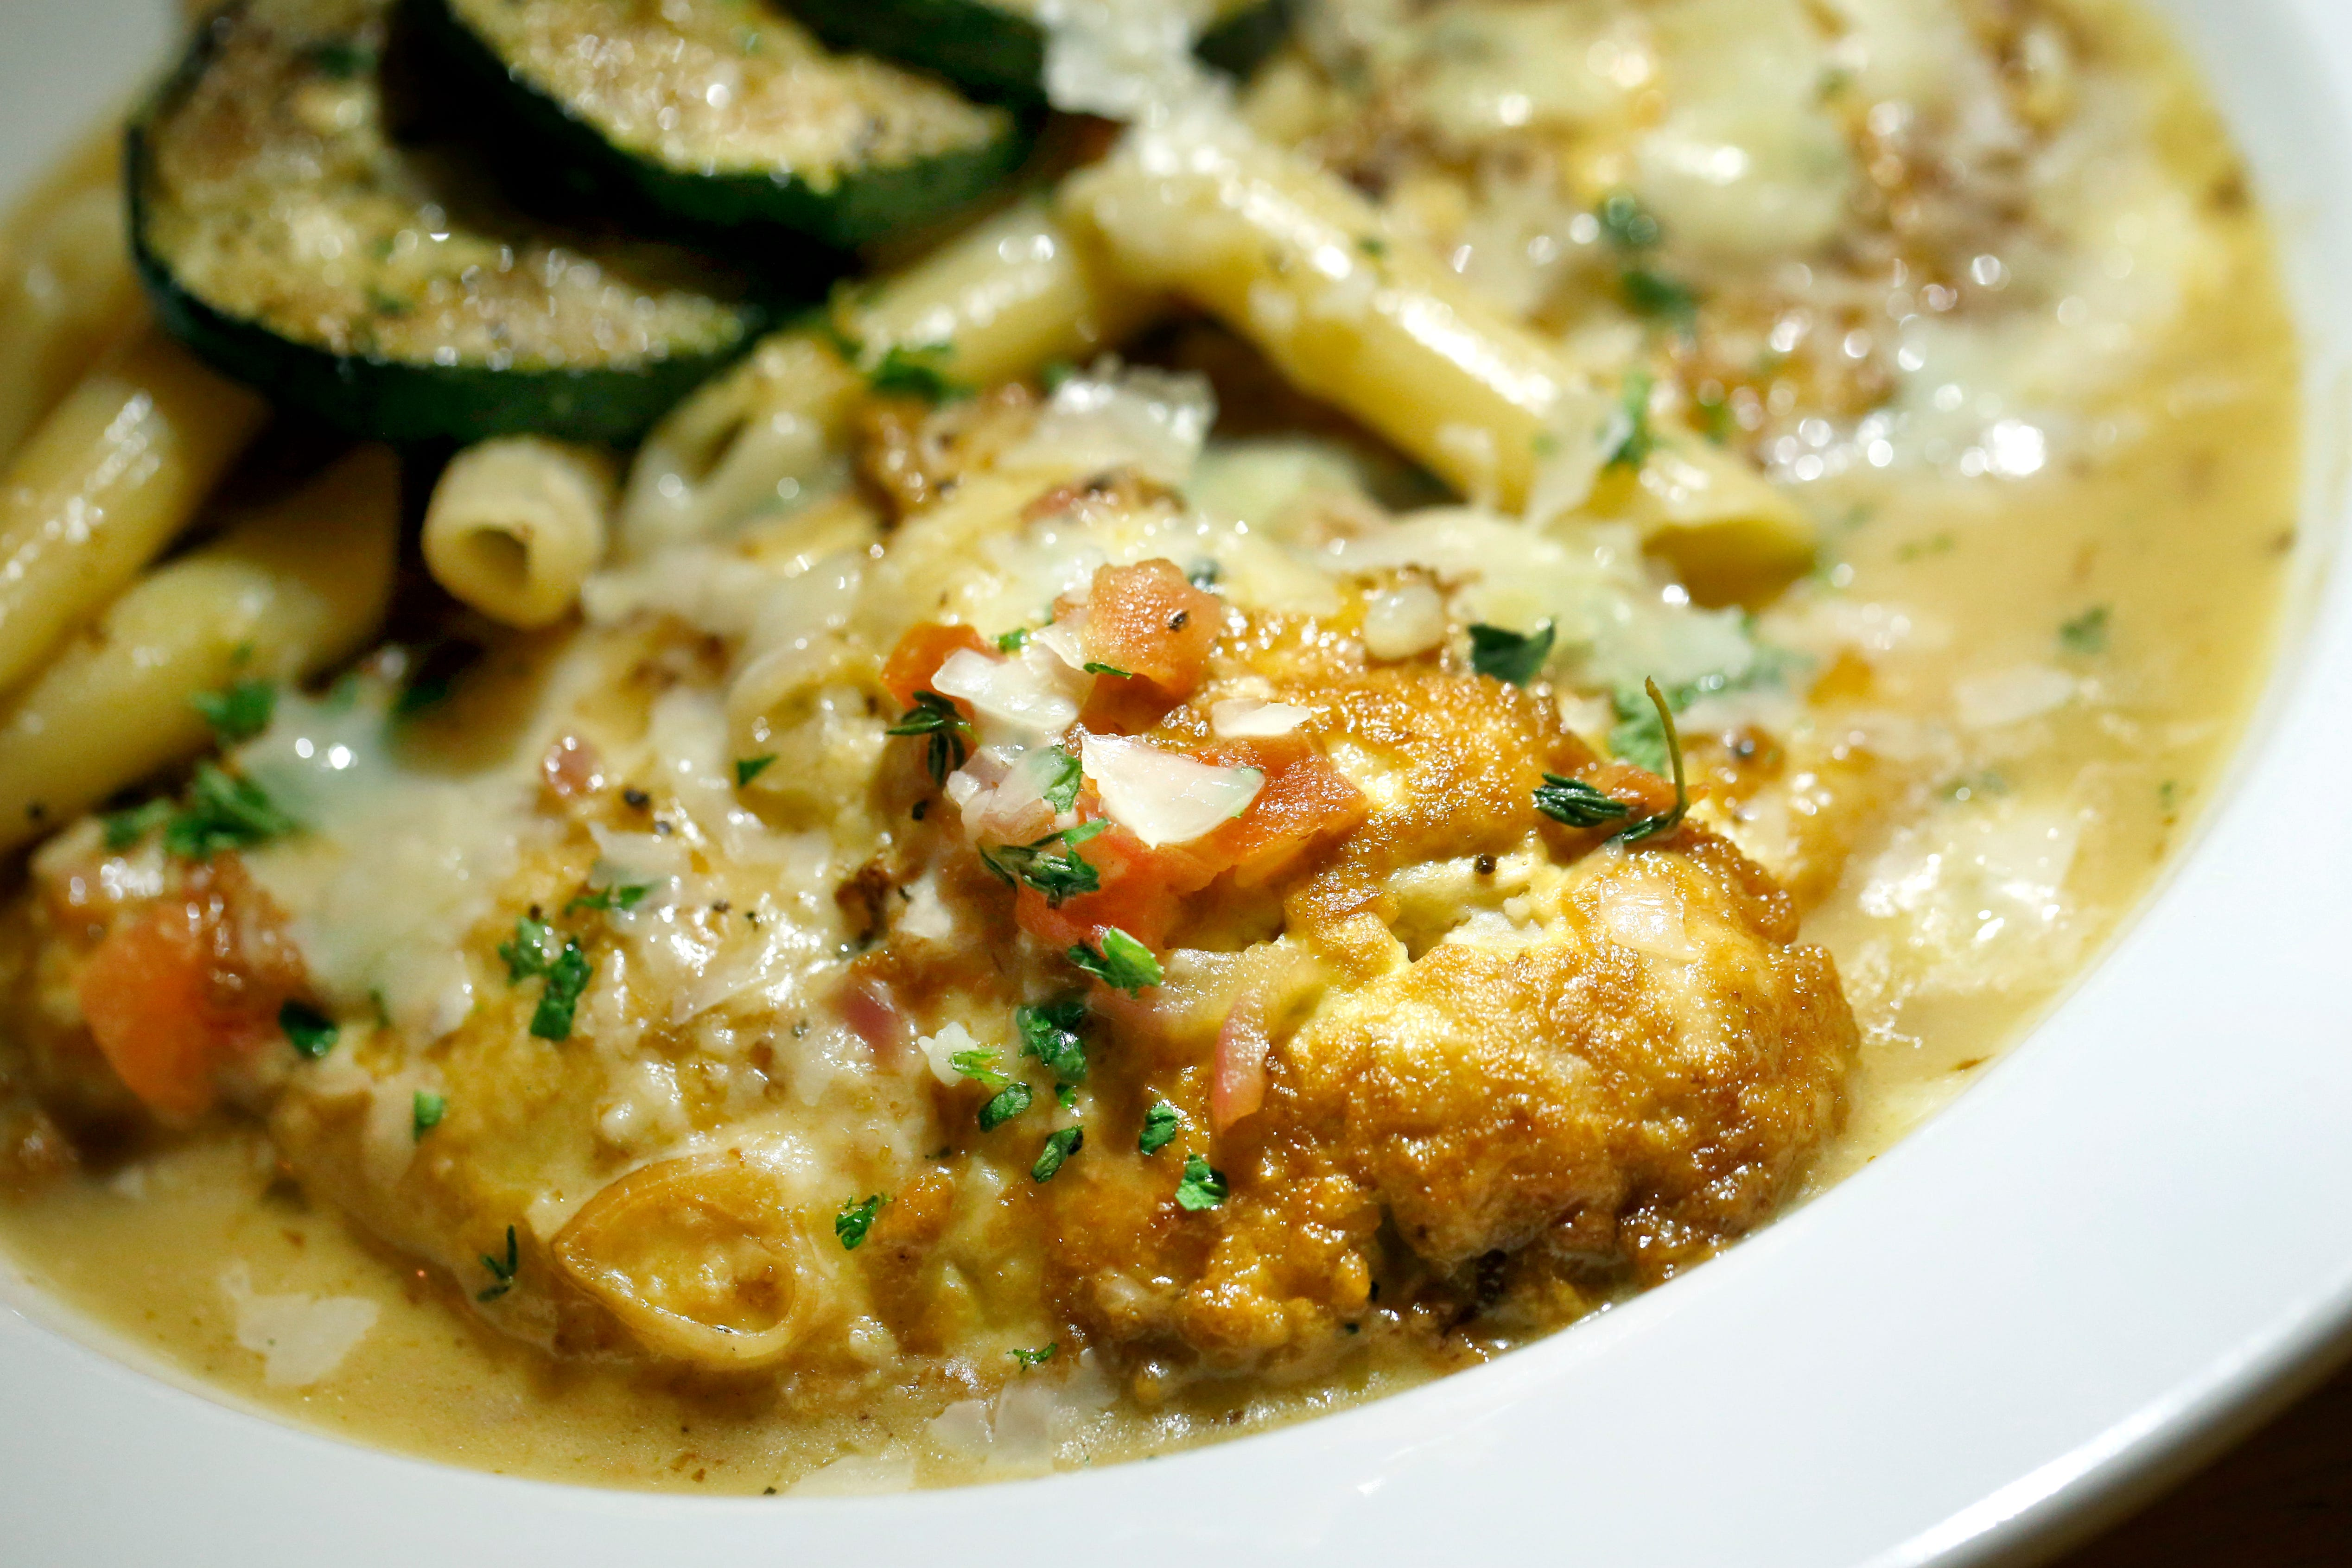 Chicken French is a popular dish in Rochester, NY, restaurants